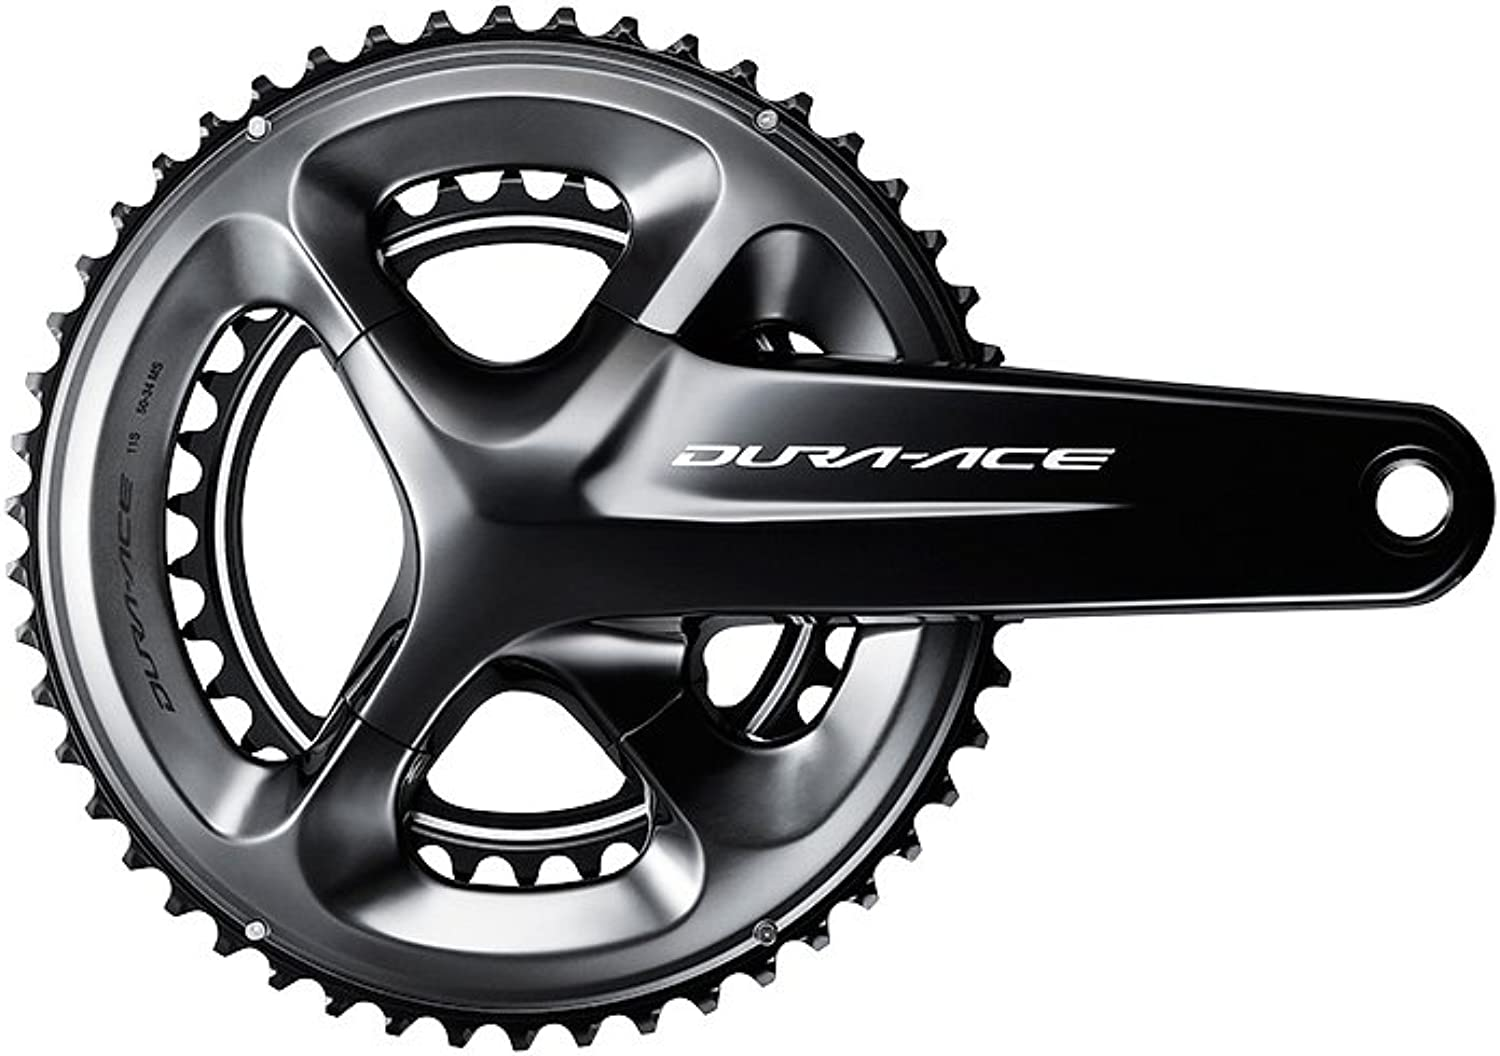 Shimano DuraAce FCR9100 170mm 5339T 11Speed Crankset